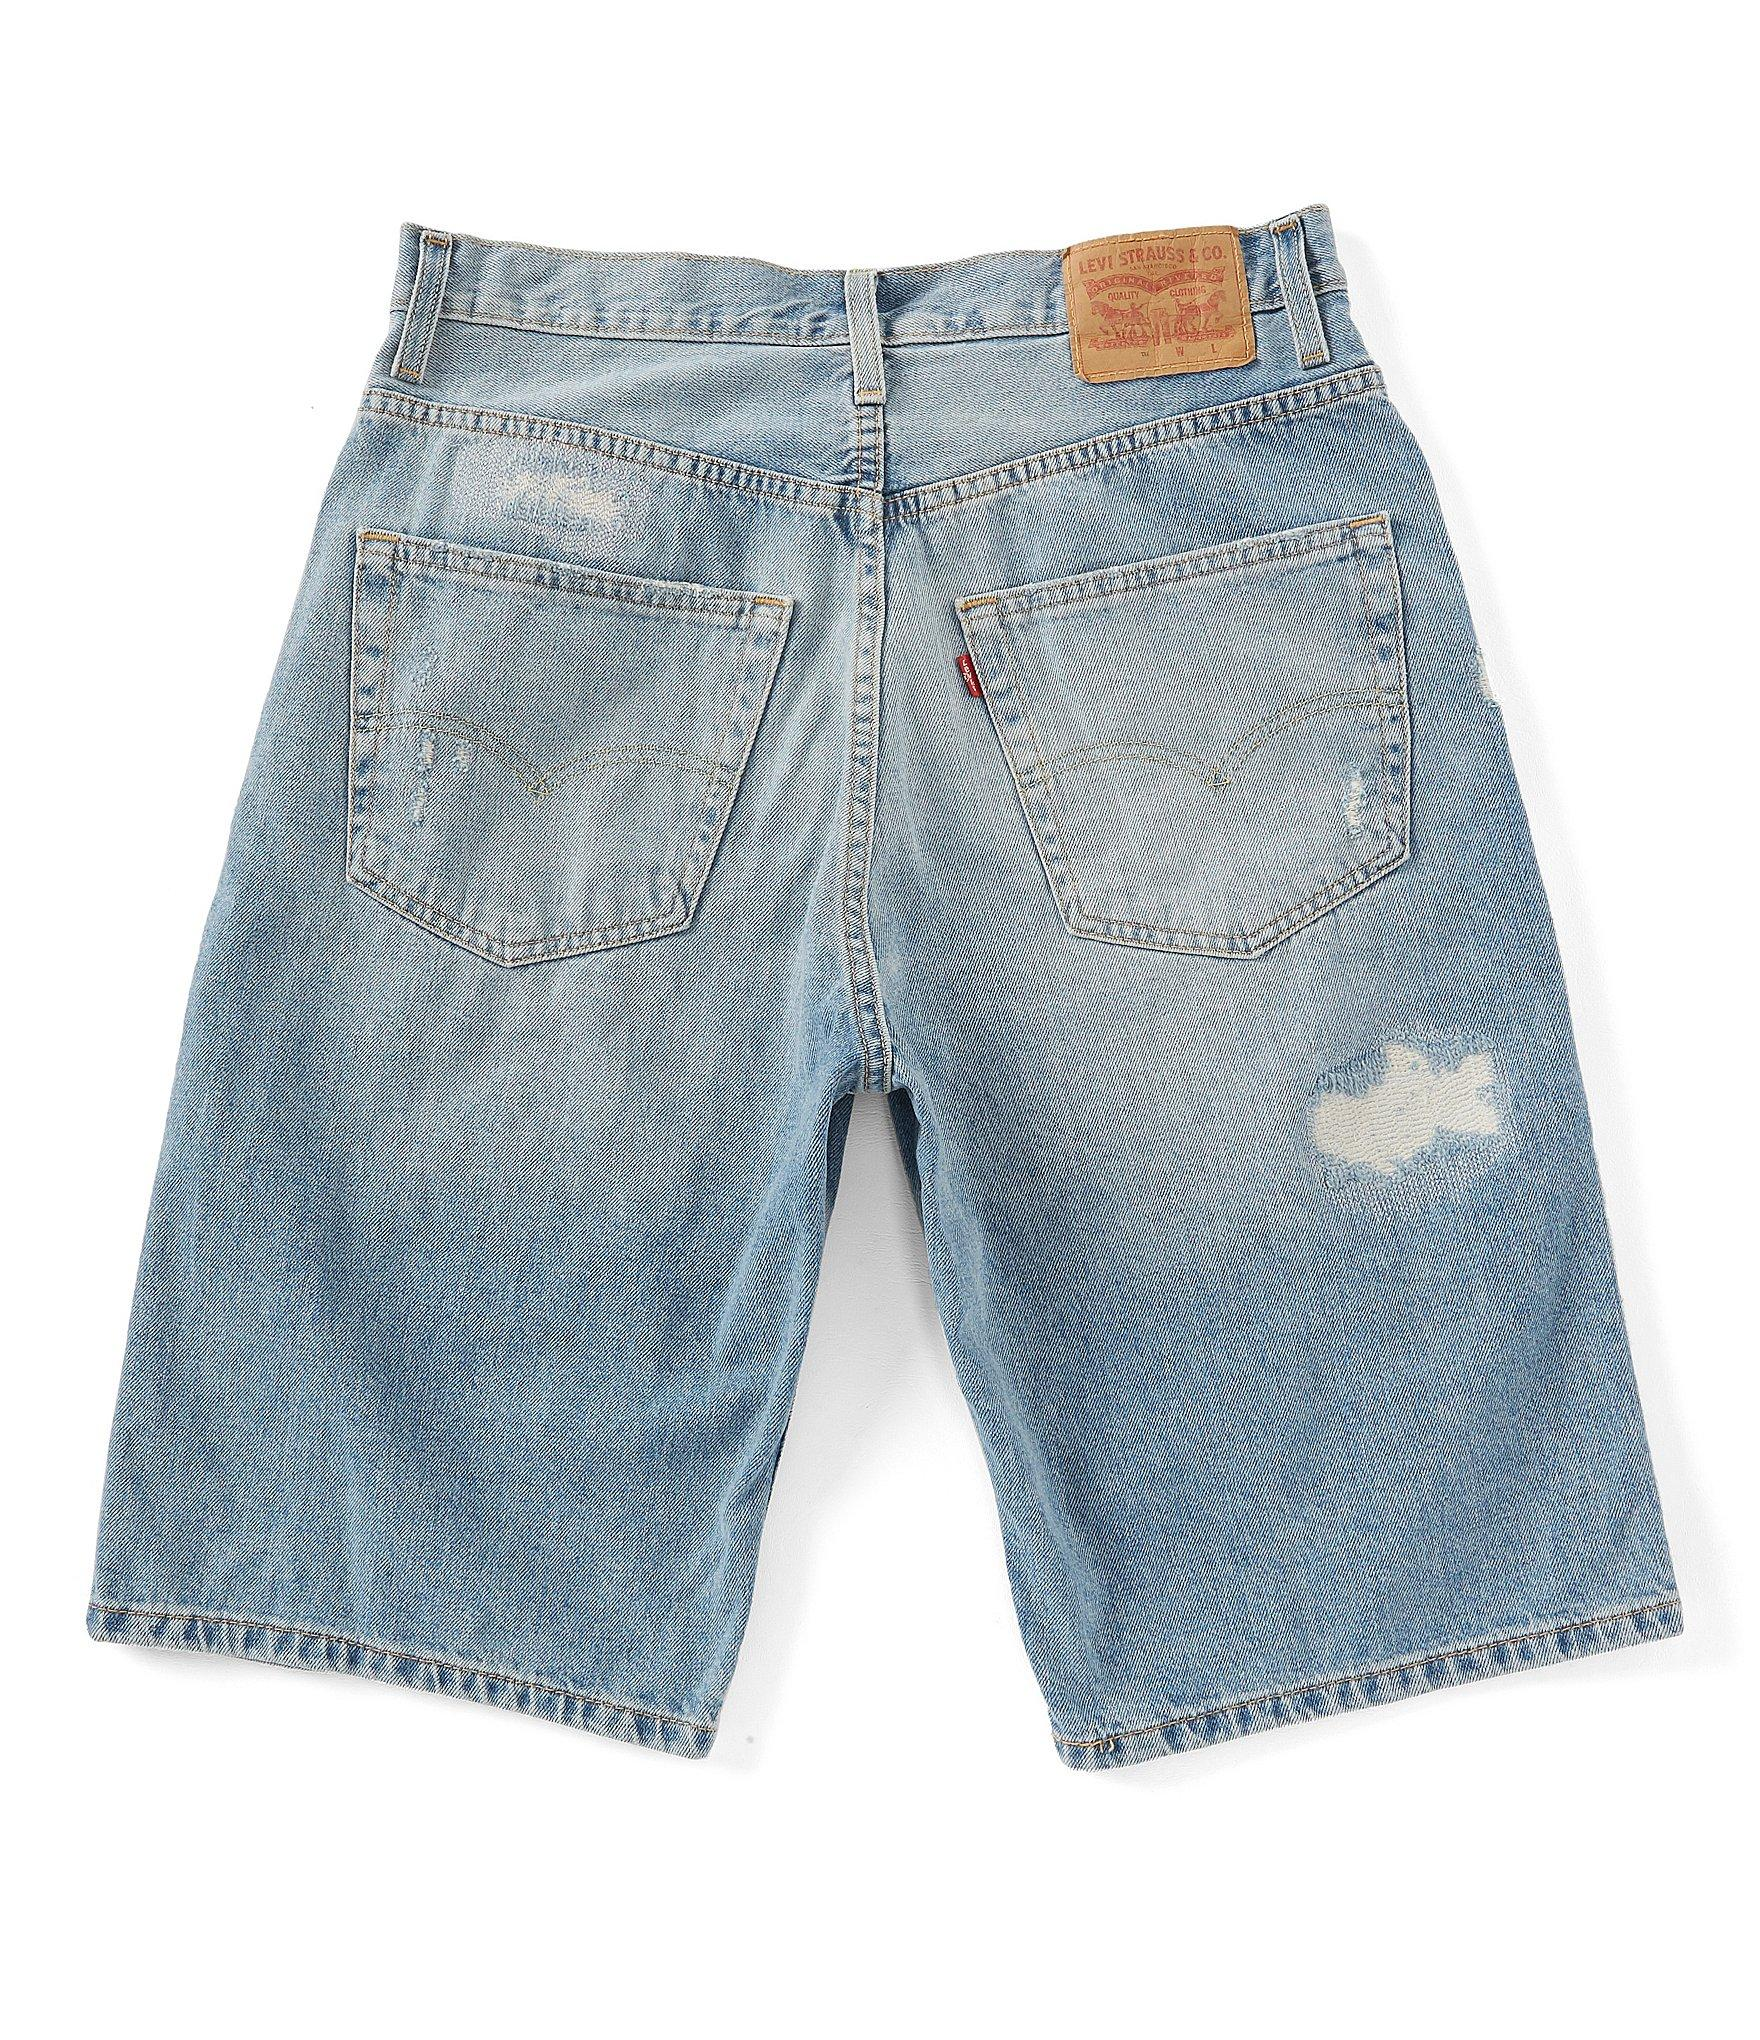 c777a0558155 Levi's - Blue 569 Loose Straight-fit 12 1/2